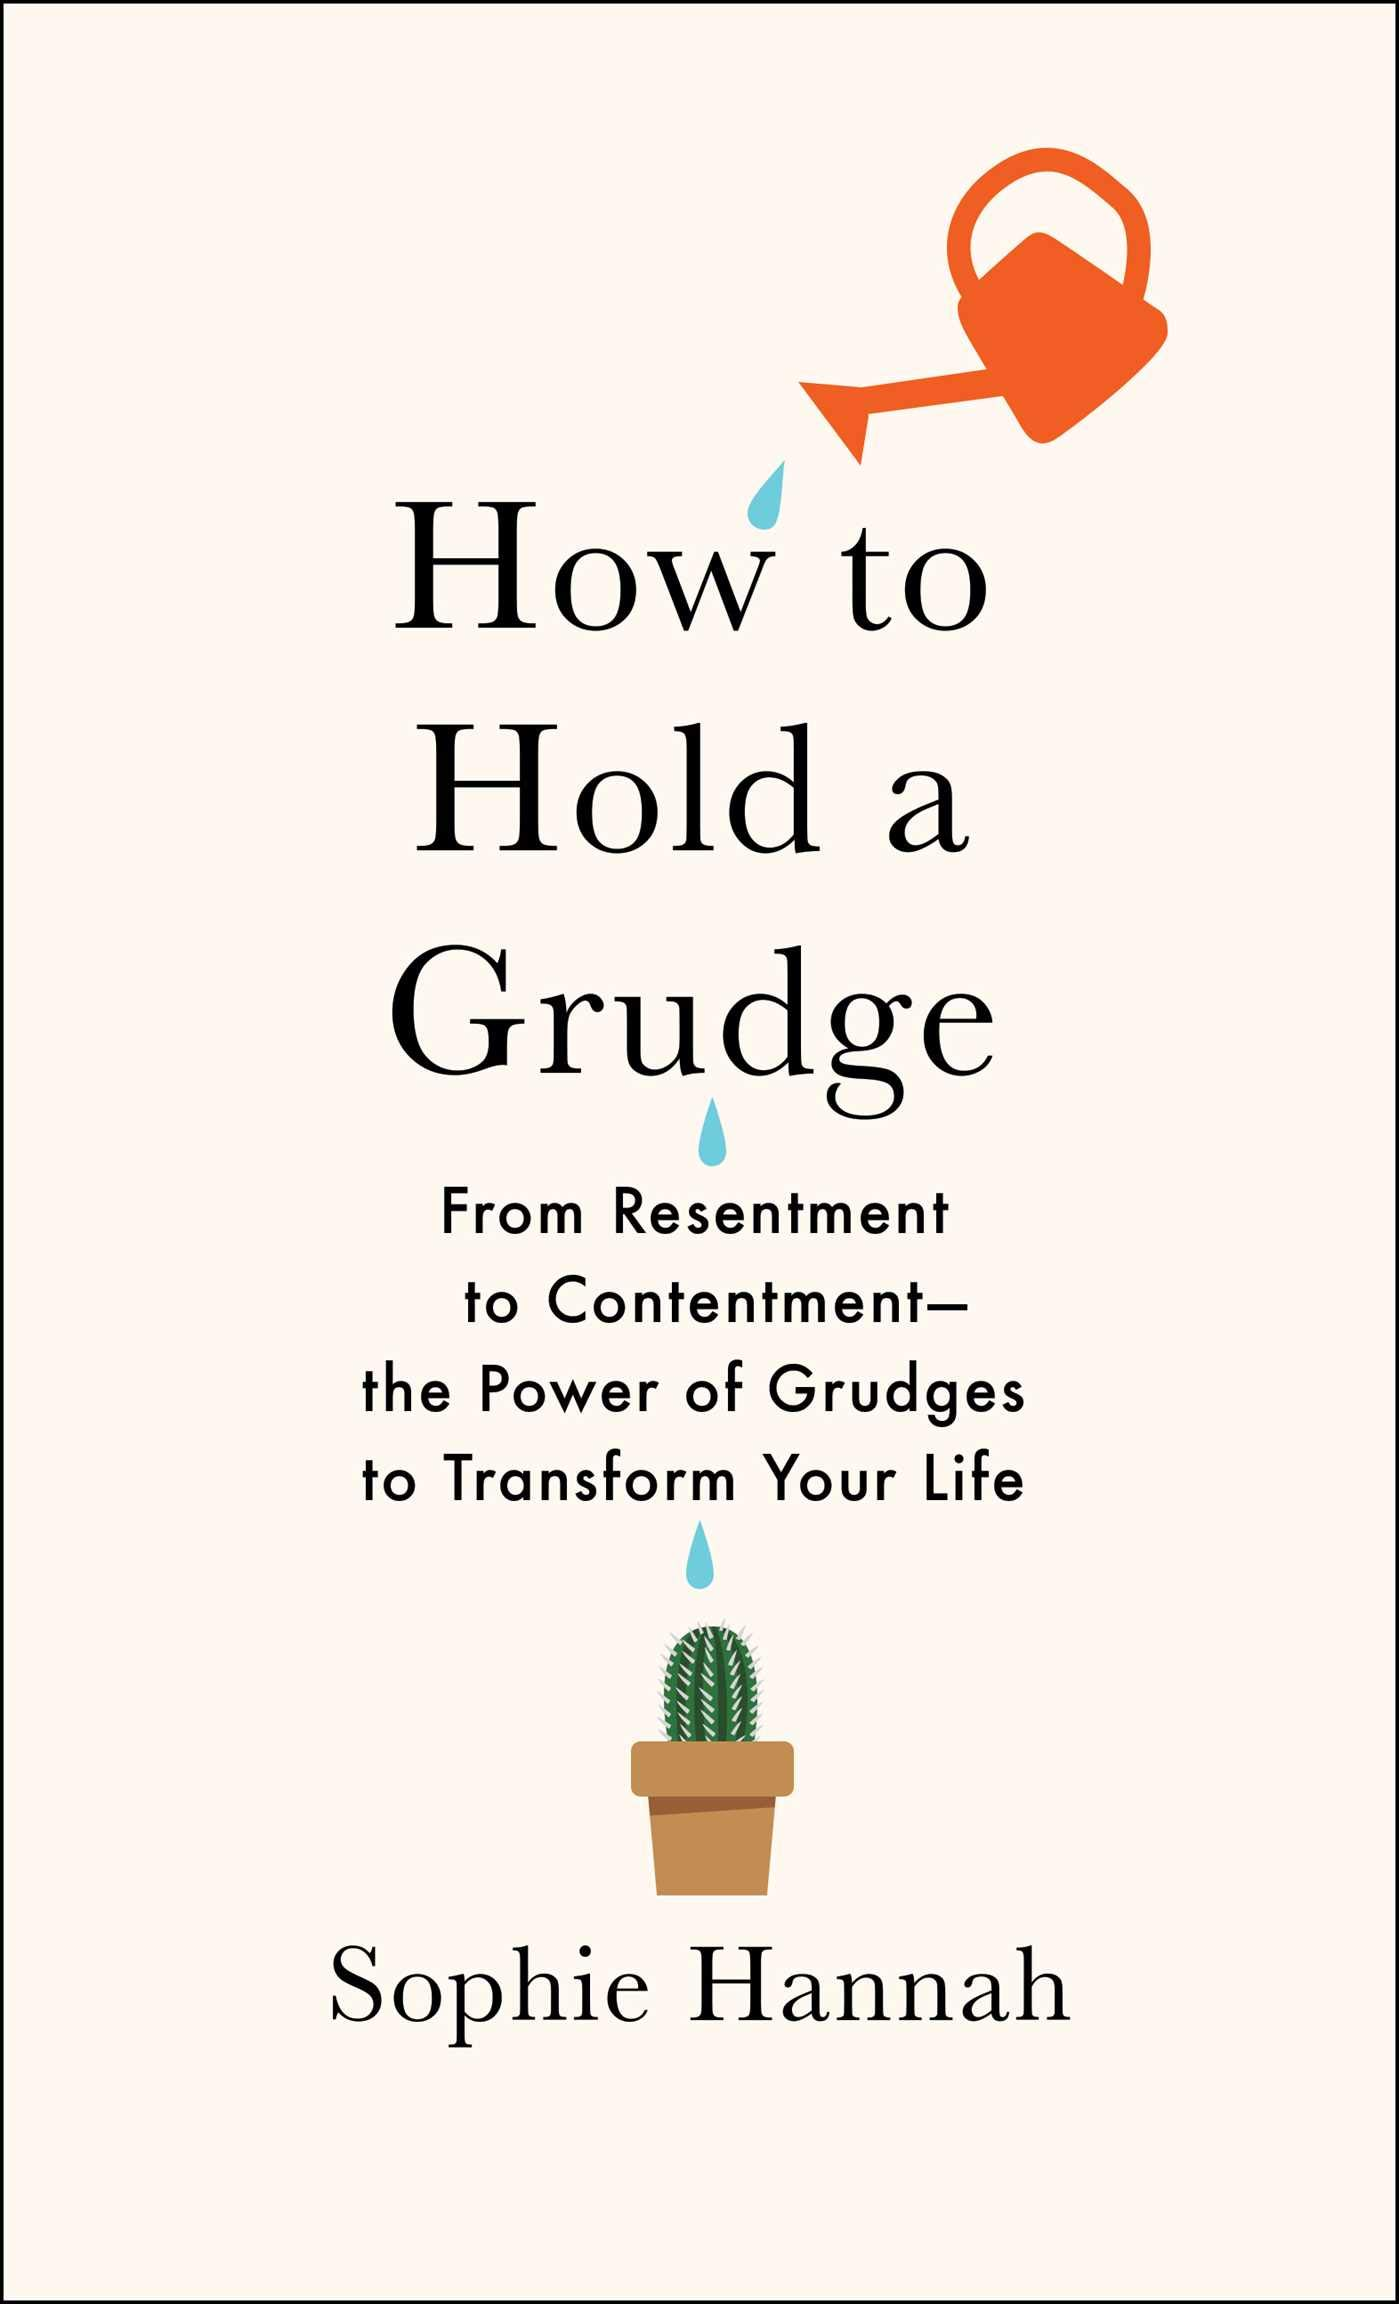 How to Hold a Grudge: From Resentment to Contentment_The Power of Grudges to  Transform Your Life: Sophie Hannah: 9781982111427: Amazon.com: Books